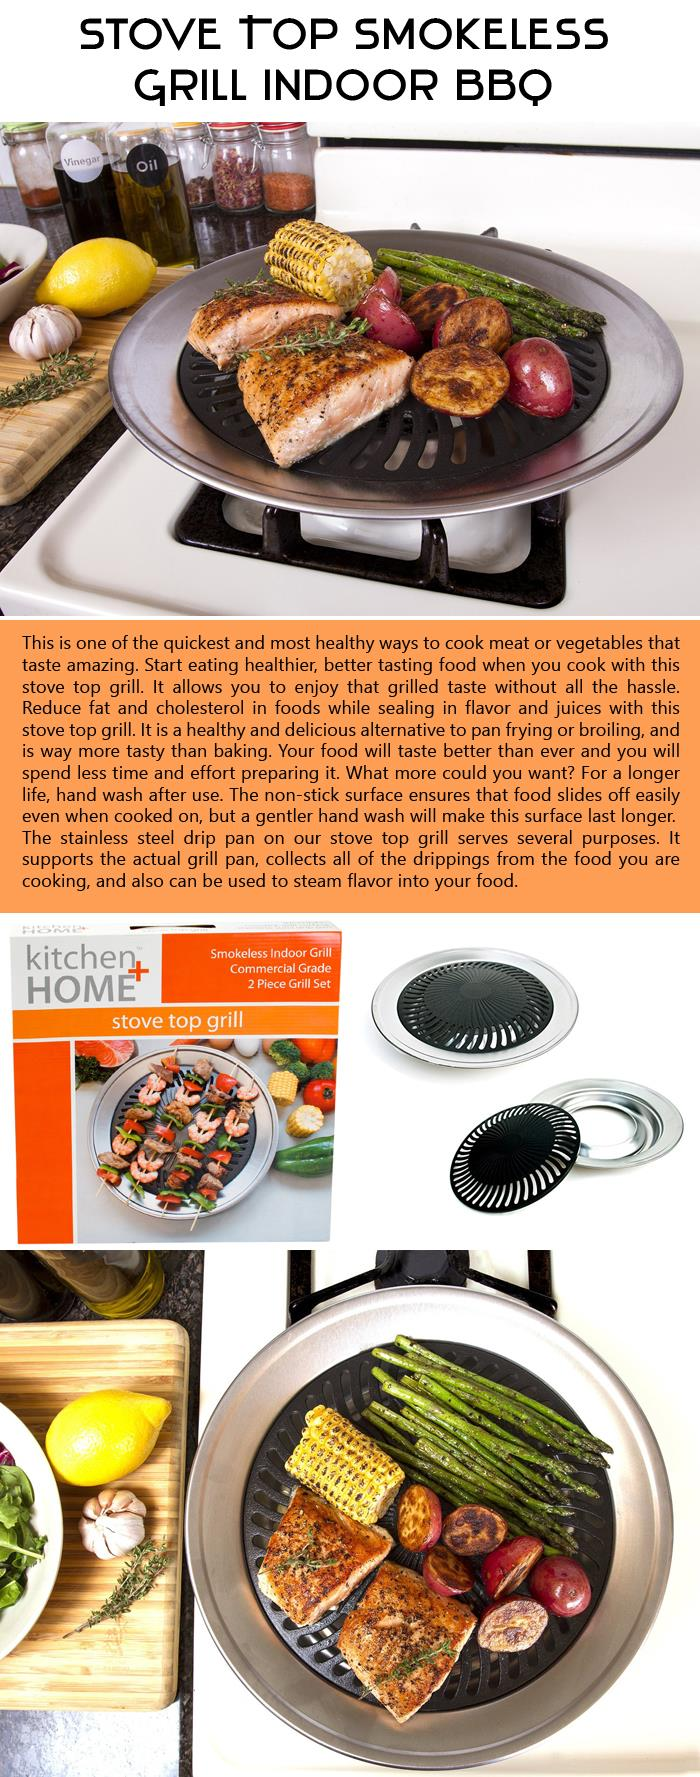 Stove Top Smokeless Grill Indoor BBQ